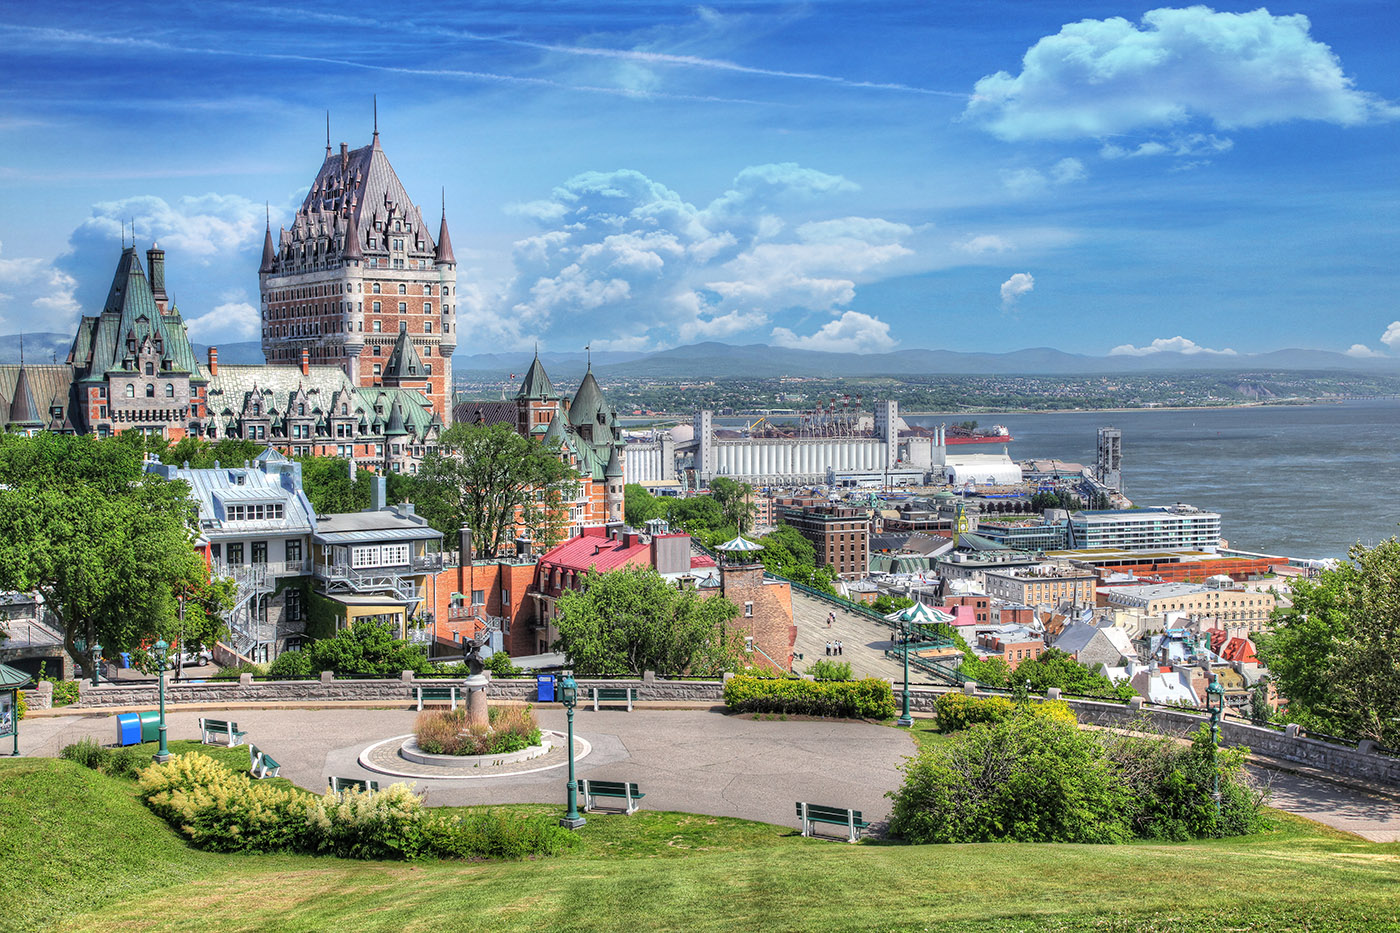 Old Quebec City District in Summer - Royalty-Free Stock Imagery